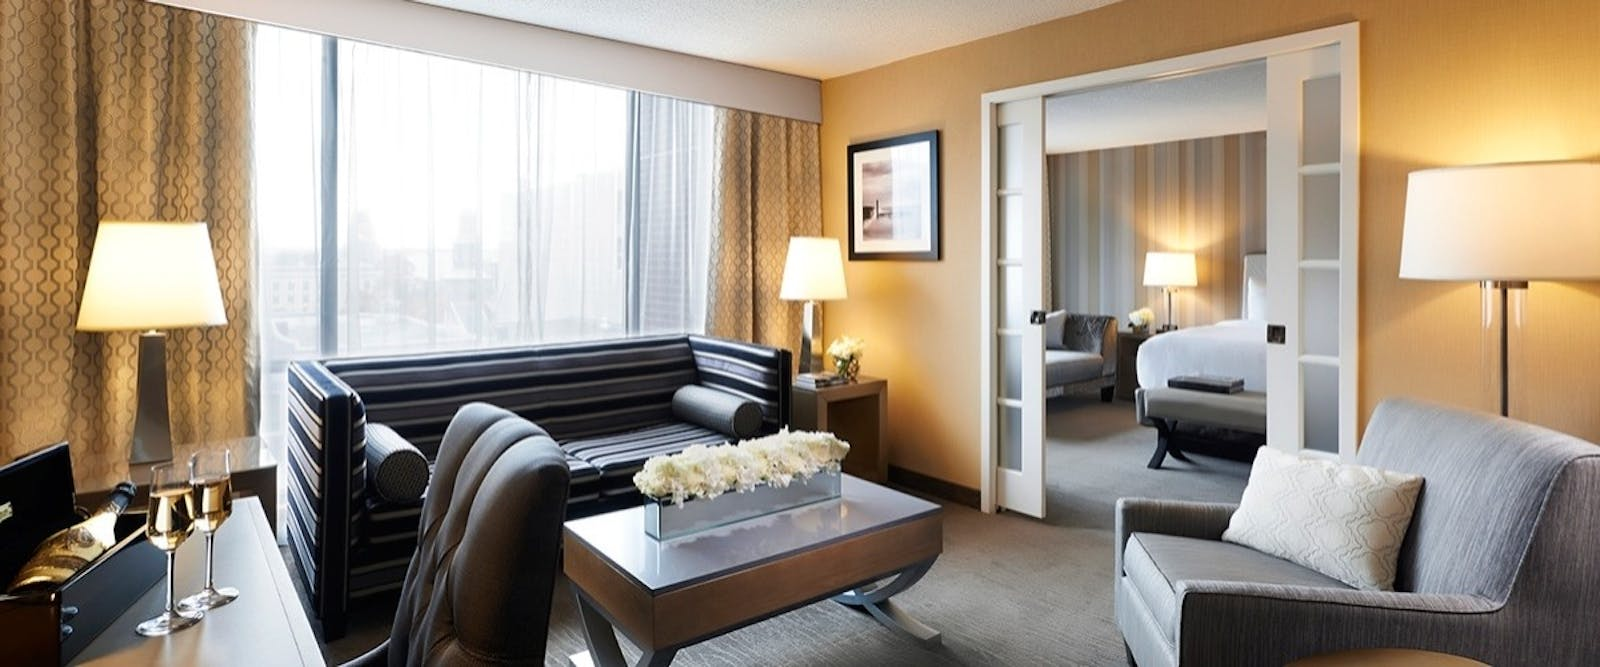 executive suite at prince george hotel halifax